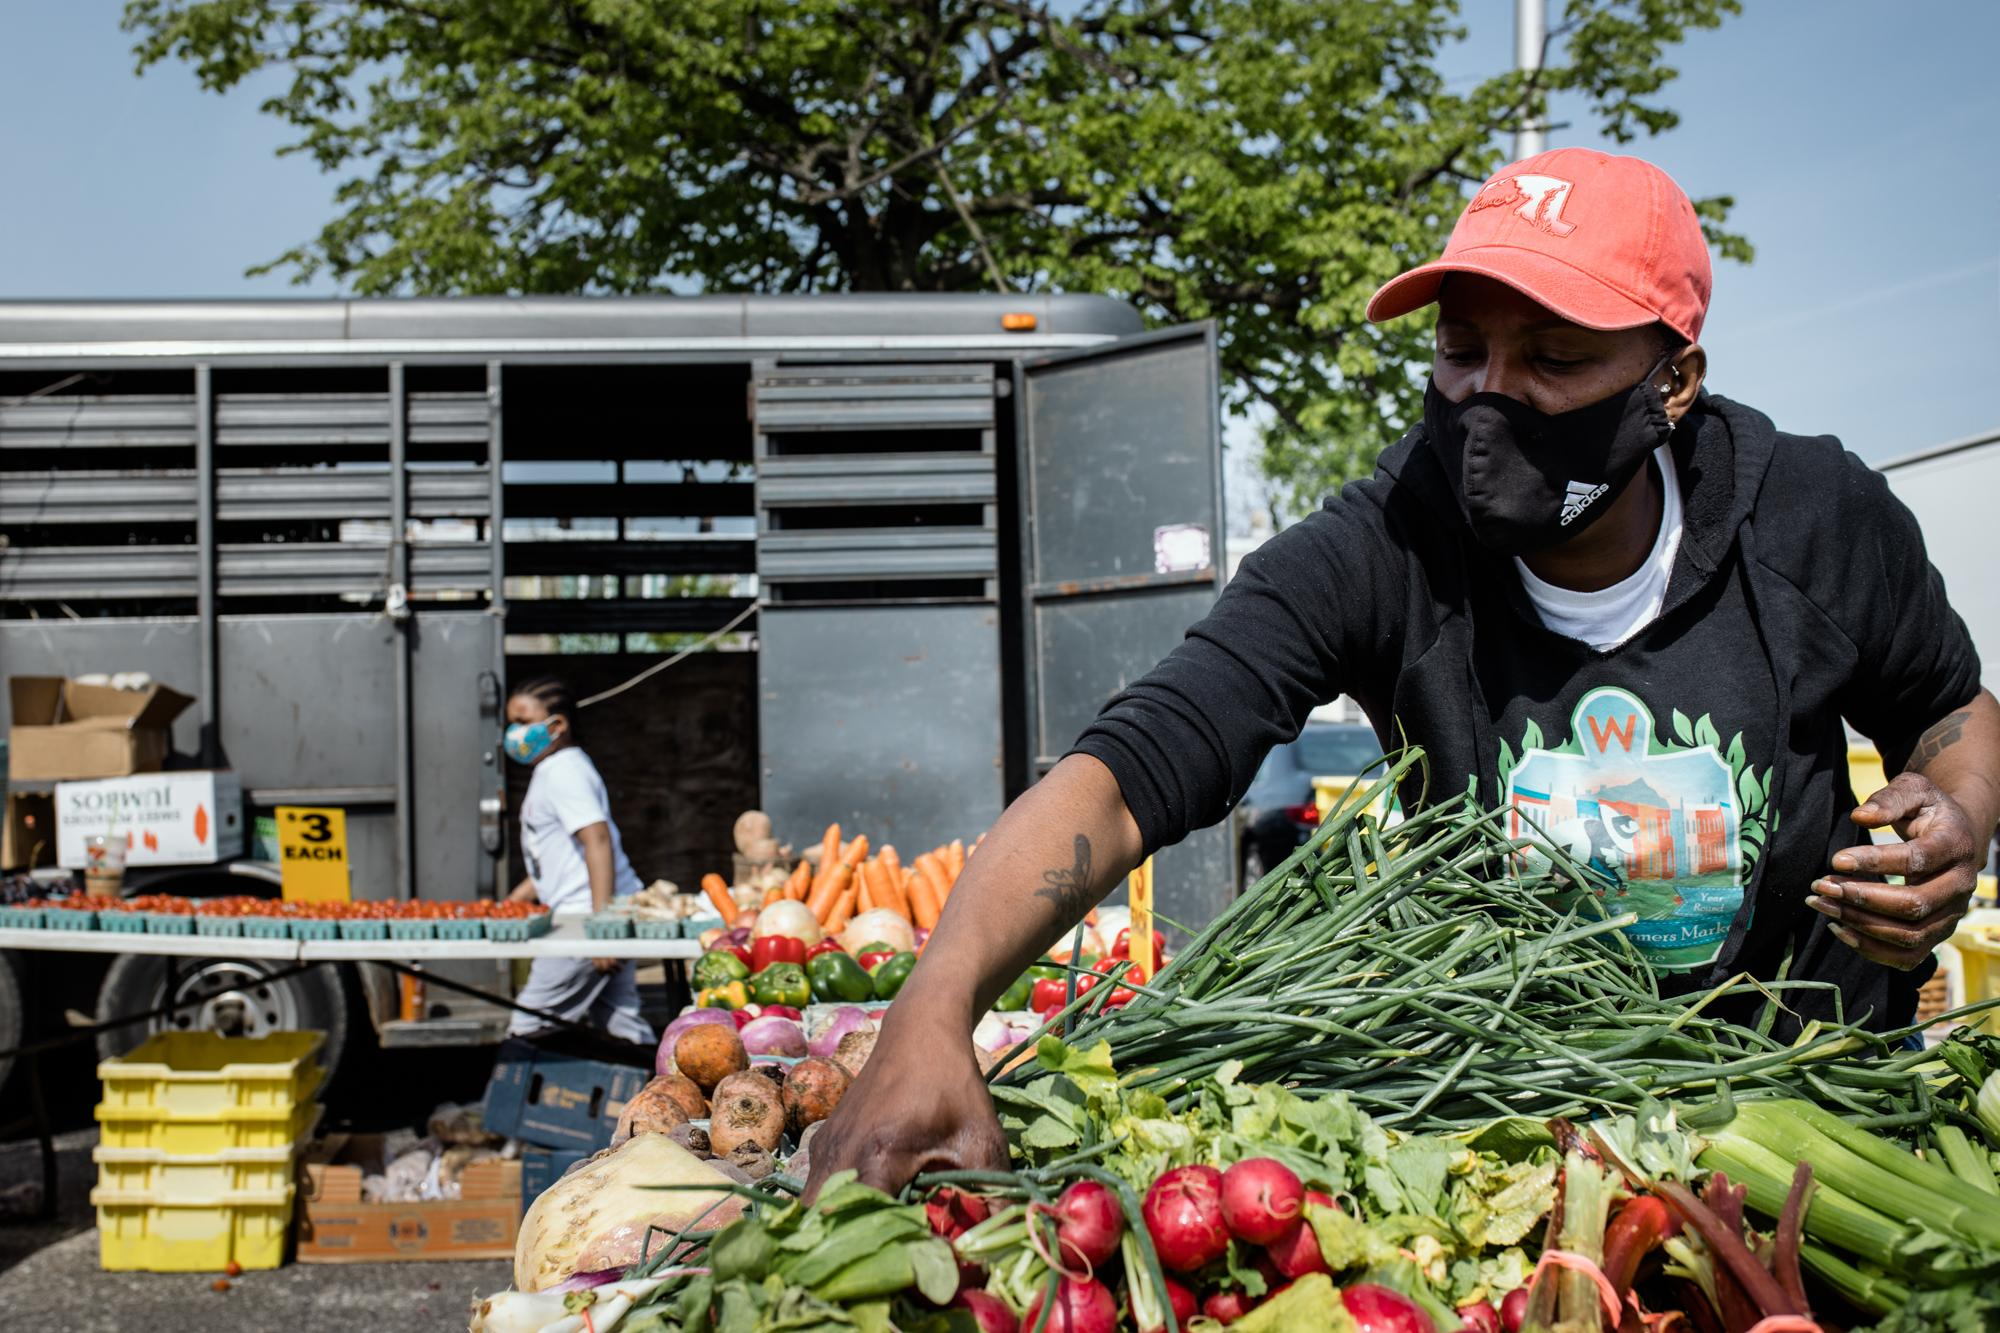 BALTIMORE, MD - APRIL 24, 2021: Cassandra Harris organizes vegetables from Pine Grove Farm at the Waverly Farmers Market, one of the few year round markets, in Baltimore, Maryland on April 24, 2021. Last year, there were fewer customers because of the COVID-19 pandemic.